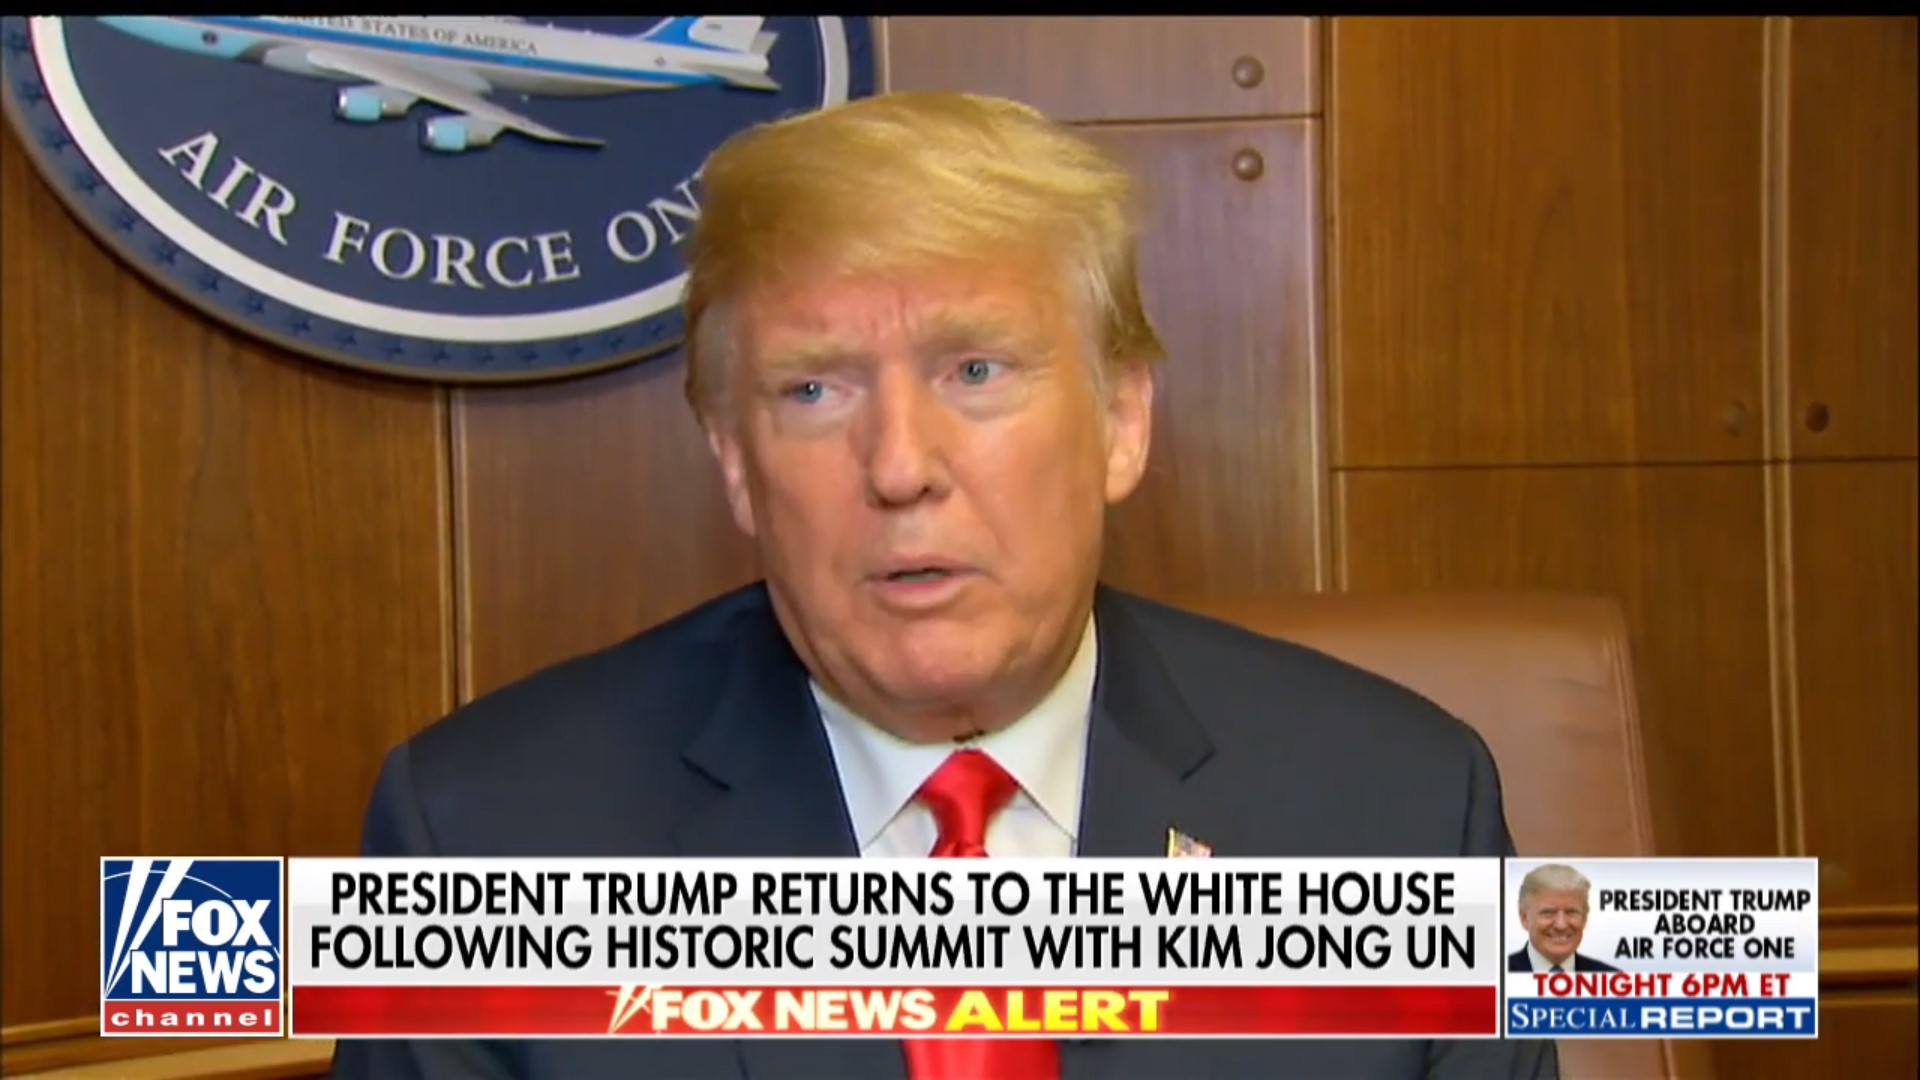 Trump: Withdrawing Troops From South Korea Was 'Never Discussed' With Kim